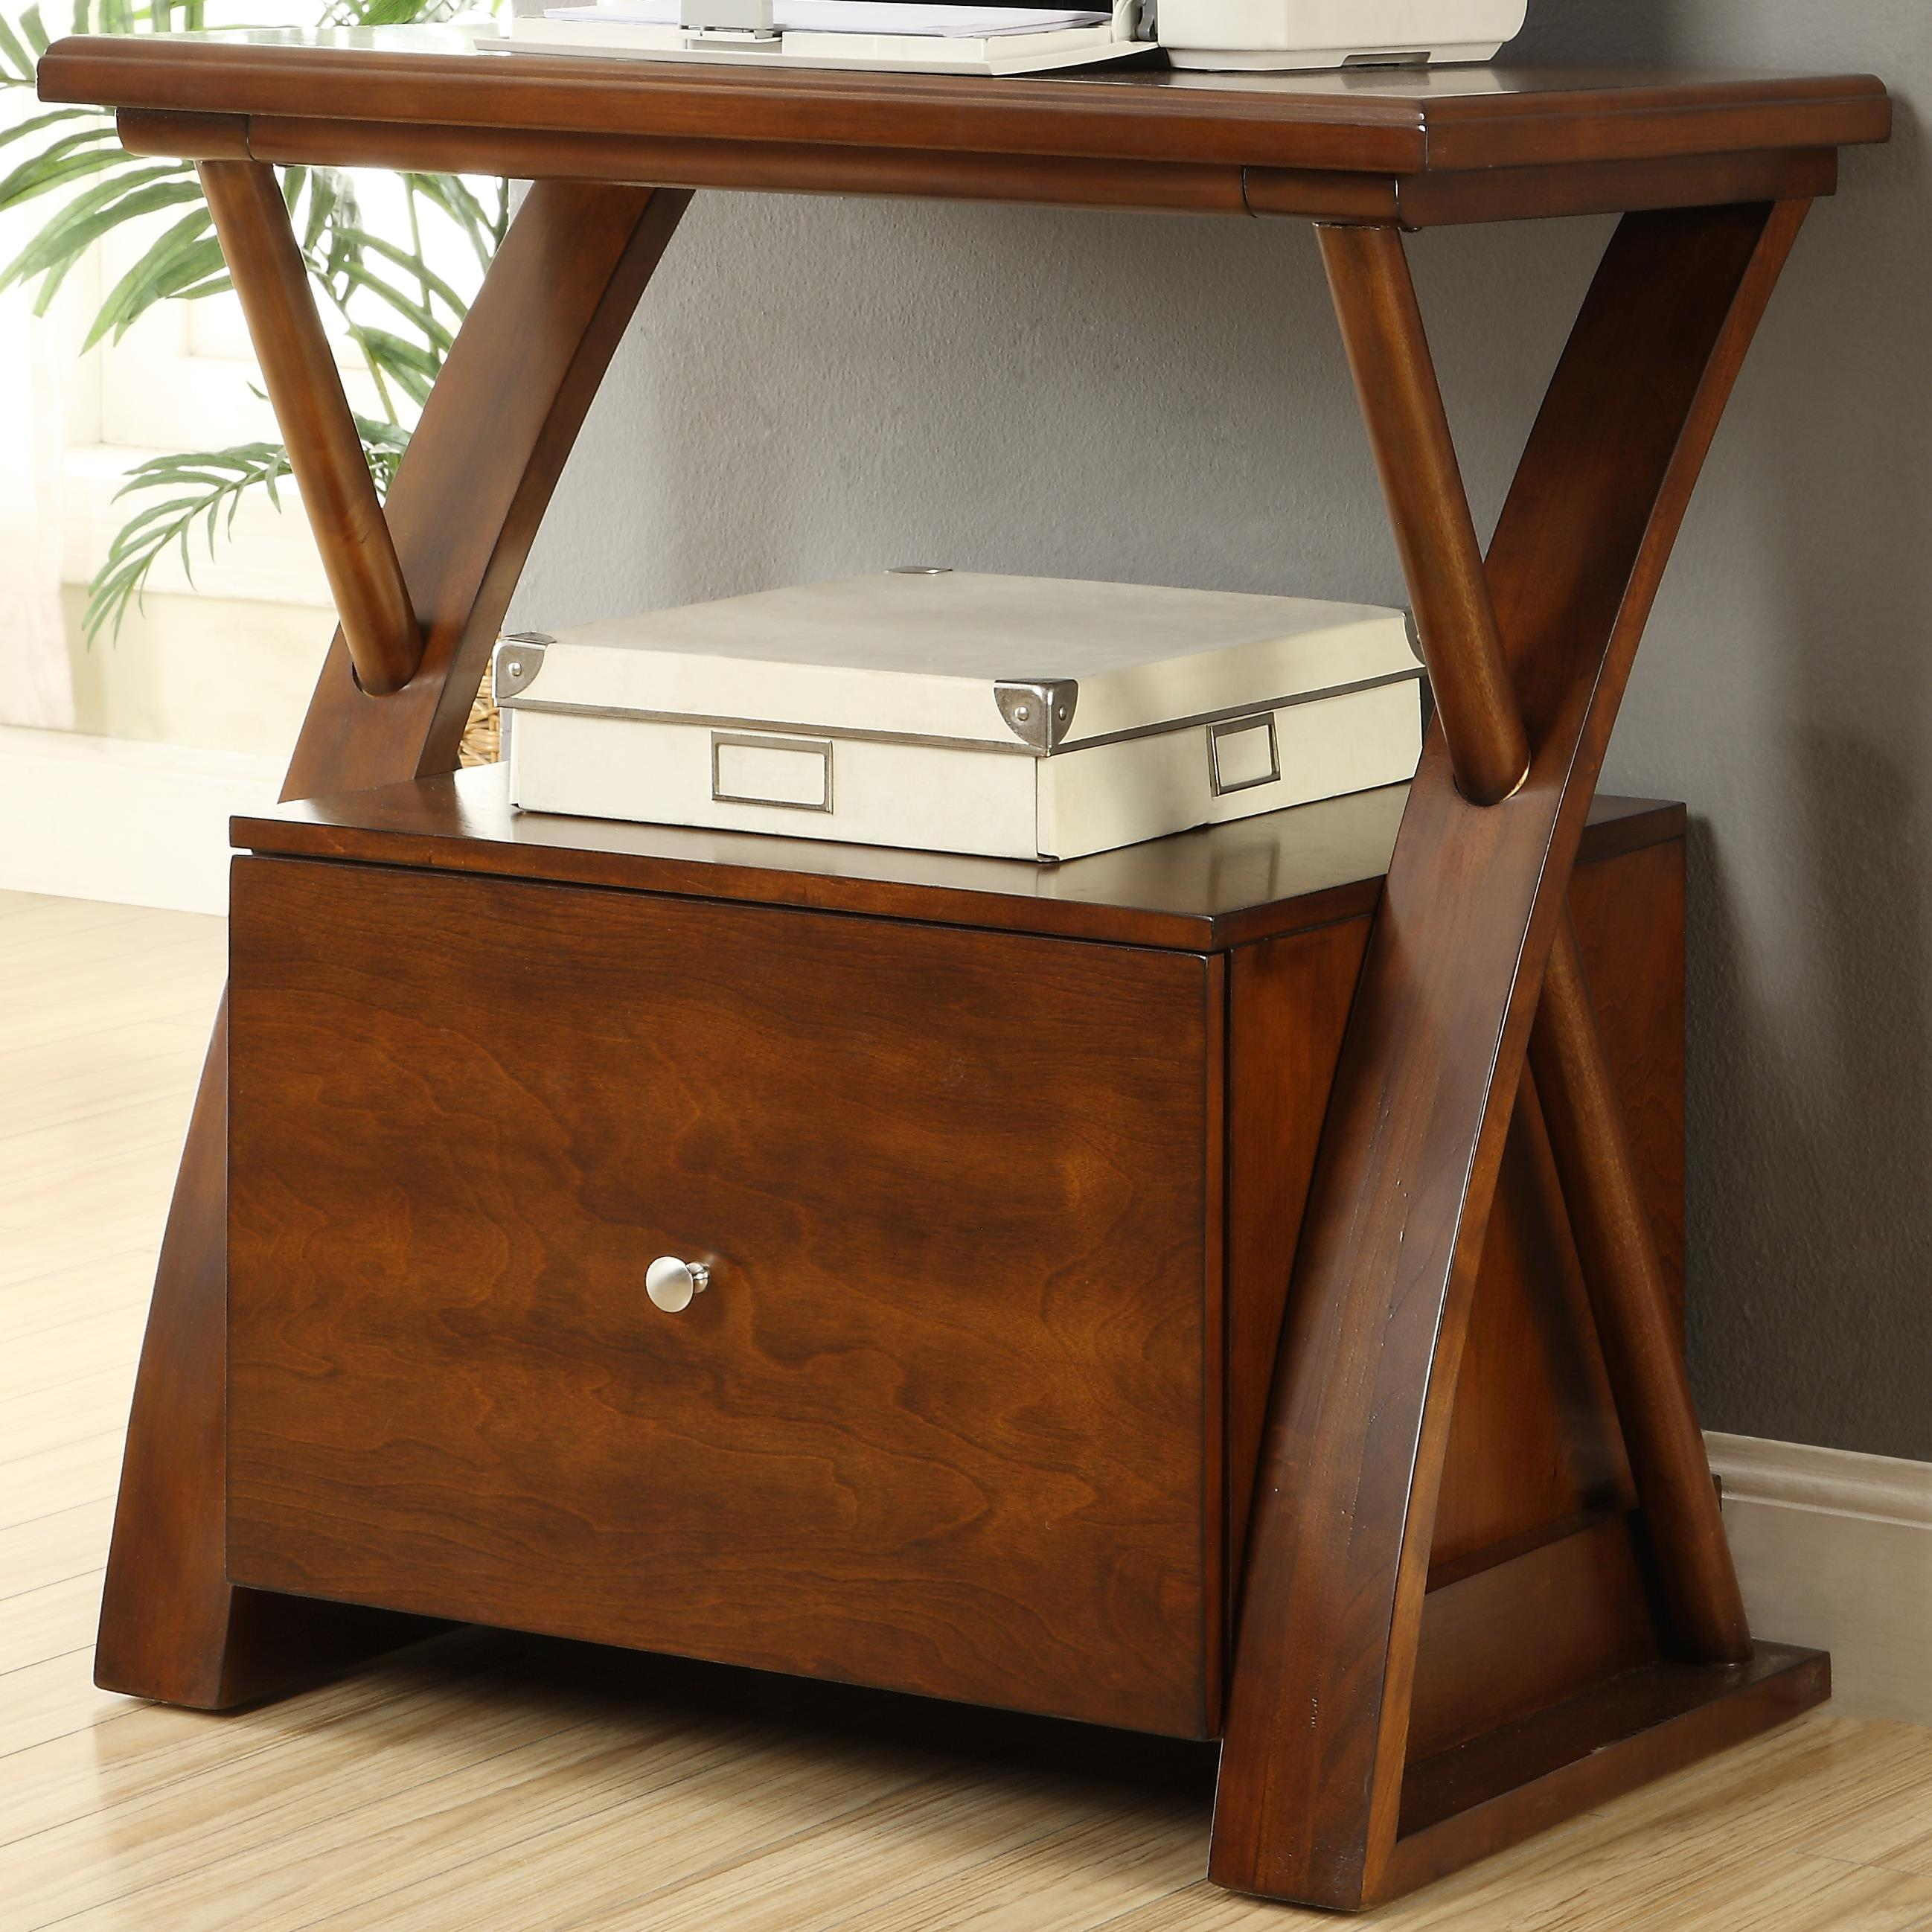 ikea wood filing underneath with jakarta interesting for cabinets two drawers drawer home wheels and ideas cabinet file desk small under office furniture